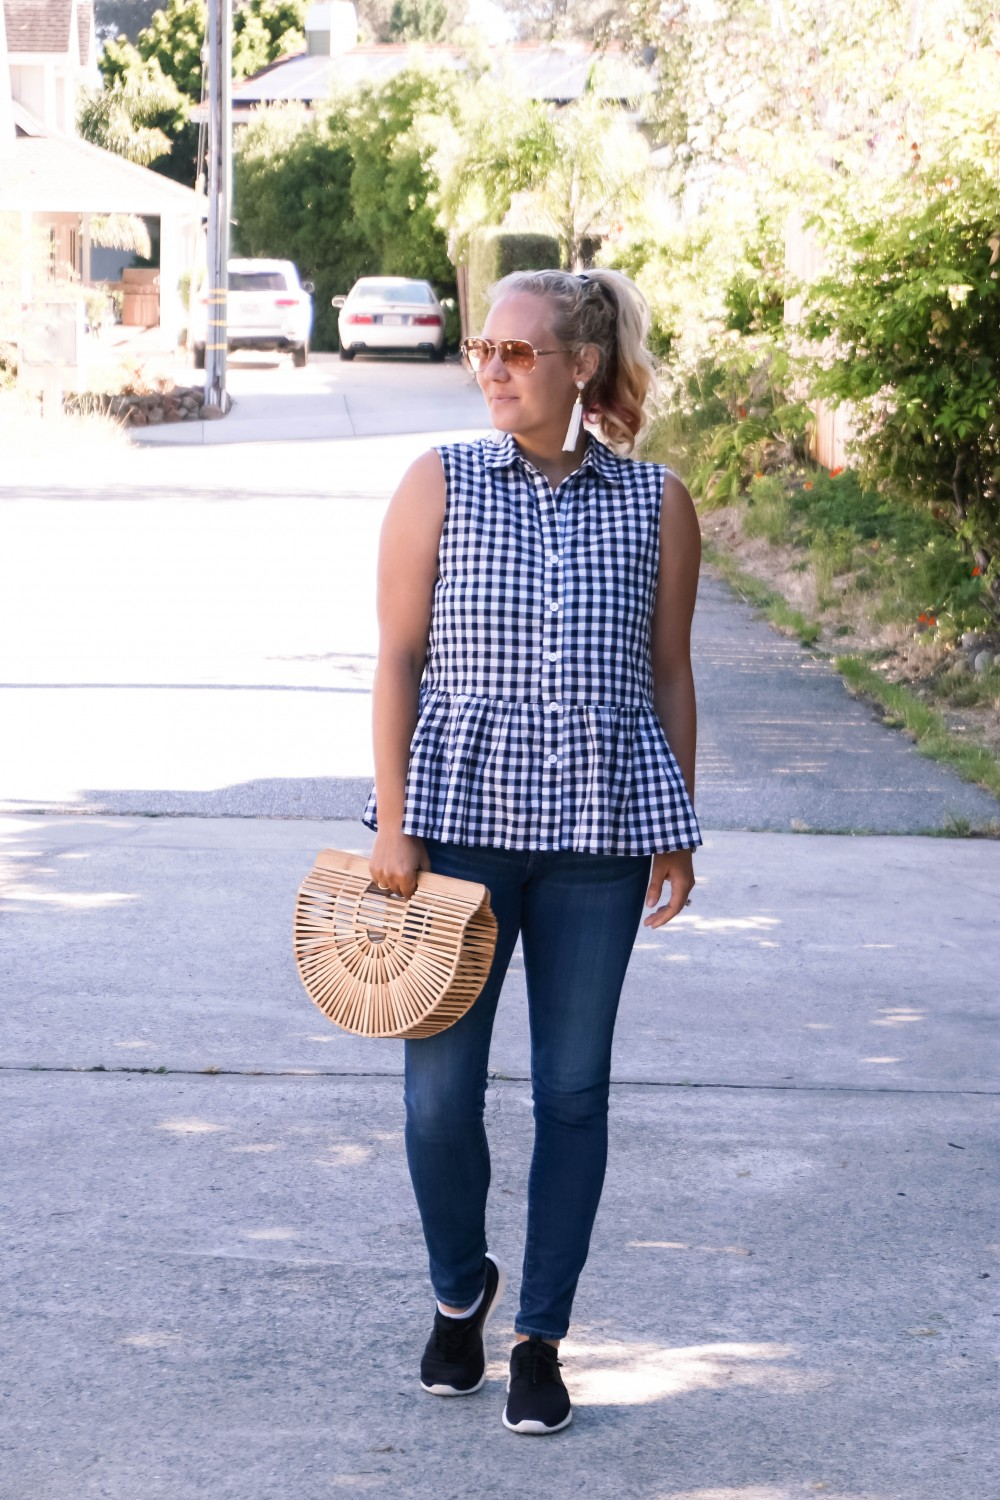 Blogger Off Duty-Daily Outfit Series-Have Need Want-Romwe Gingham Bow Top-Gingham Top-Summer Style-Mom Style-Stylish Moms-Outfit Inspiration 4